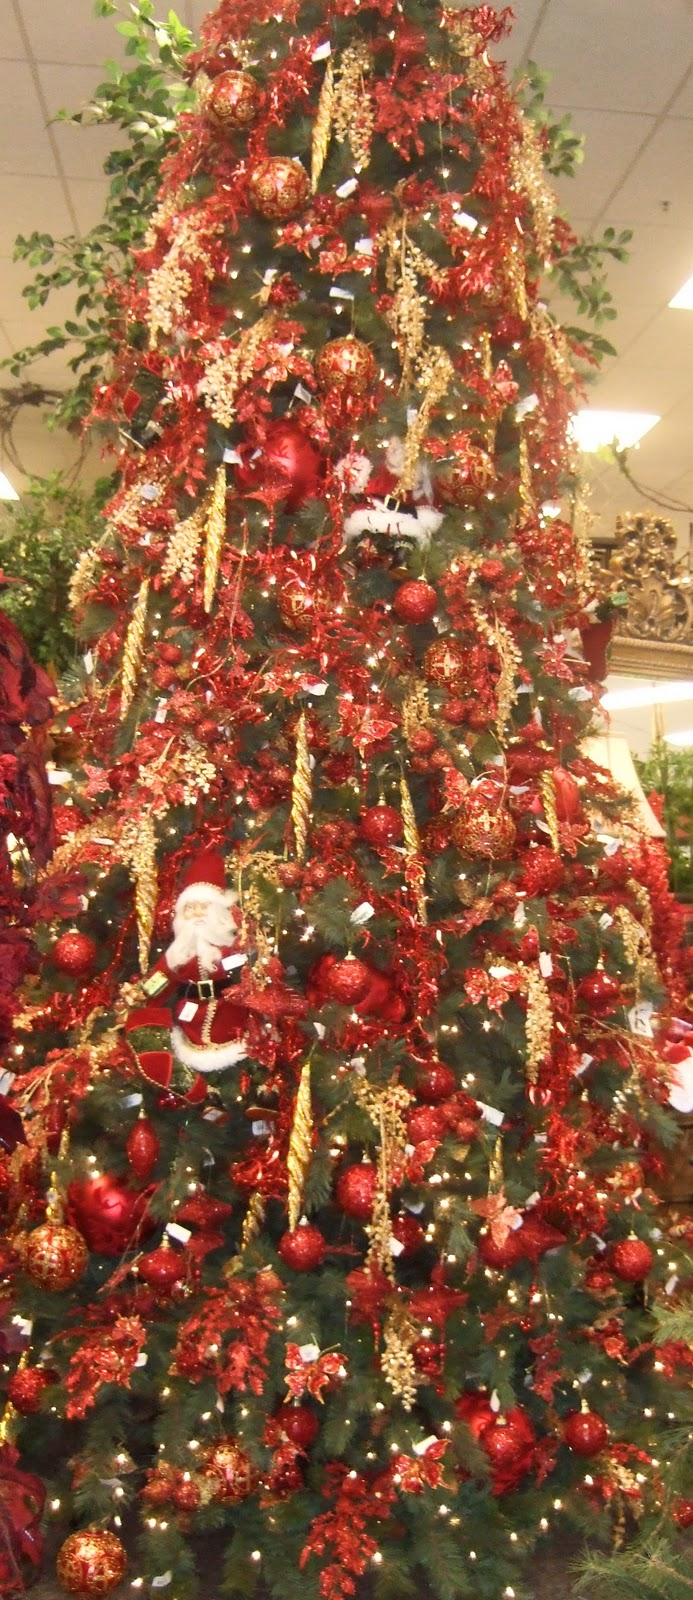 Ana Silk Flowers: Ideas!!!... Christmas Tree Decorating ...